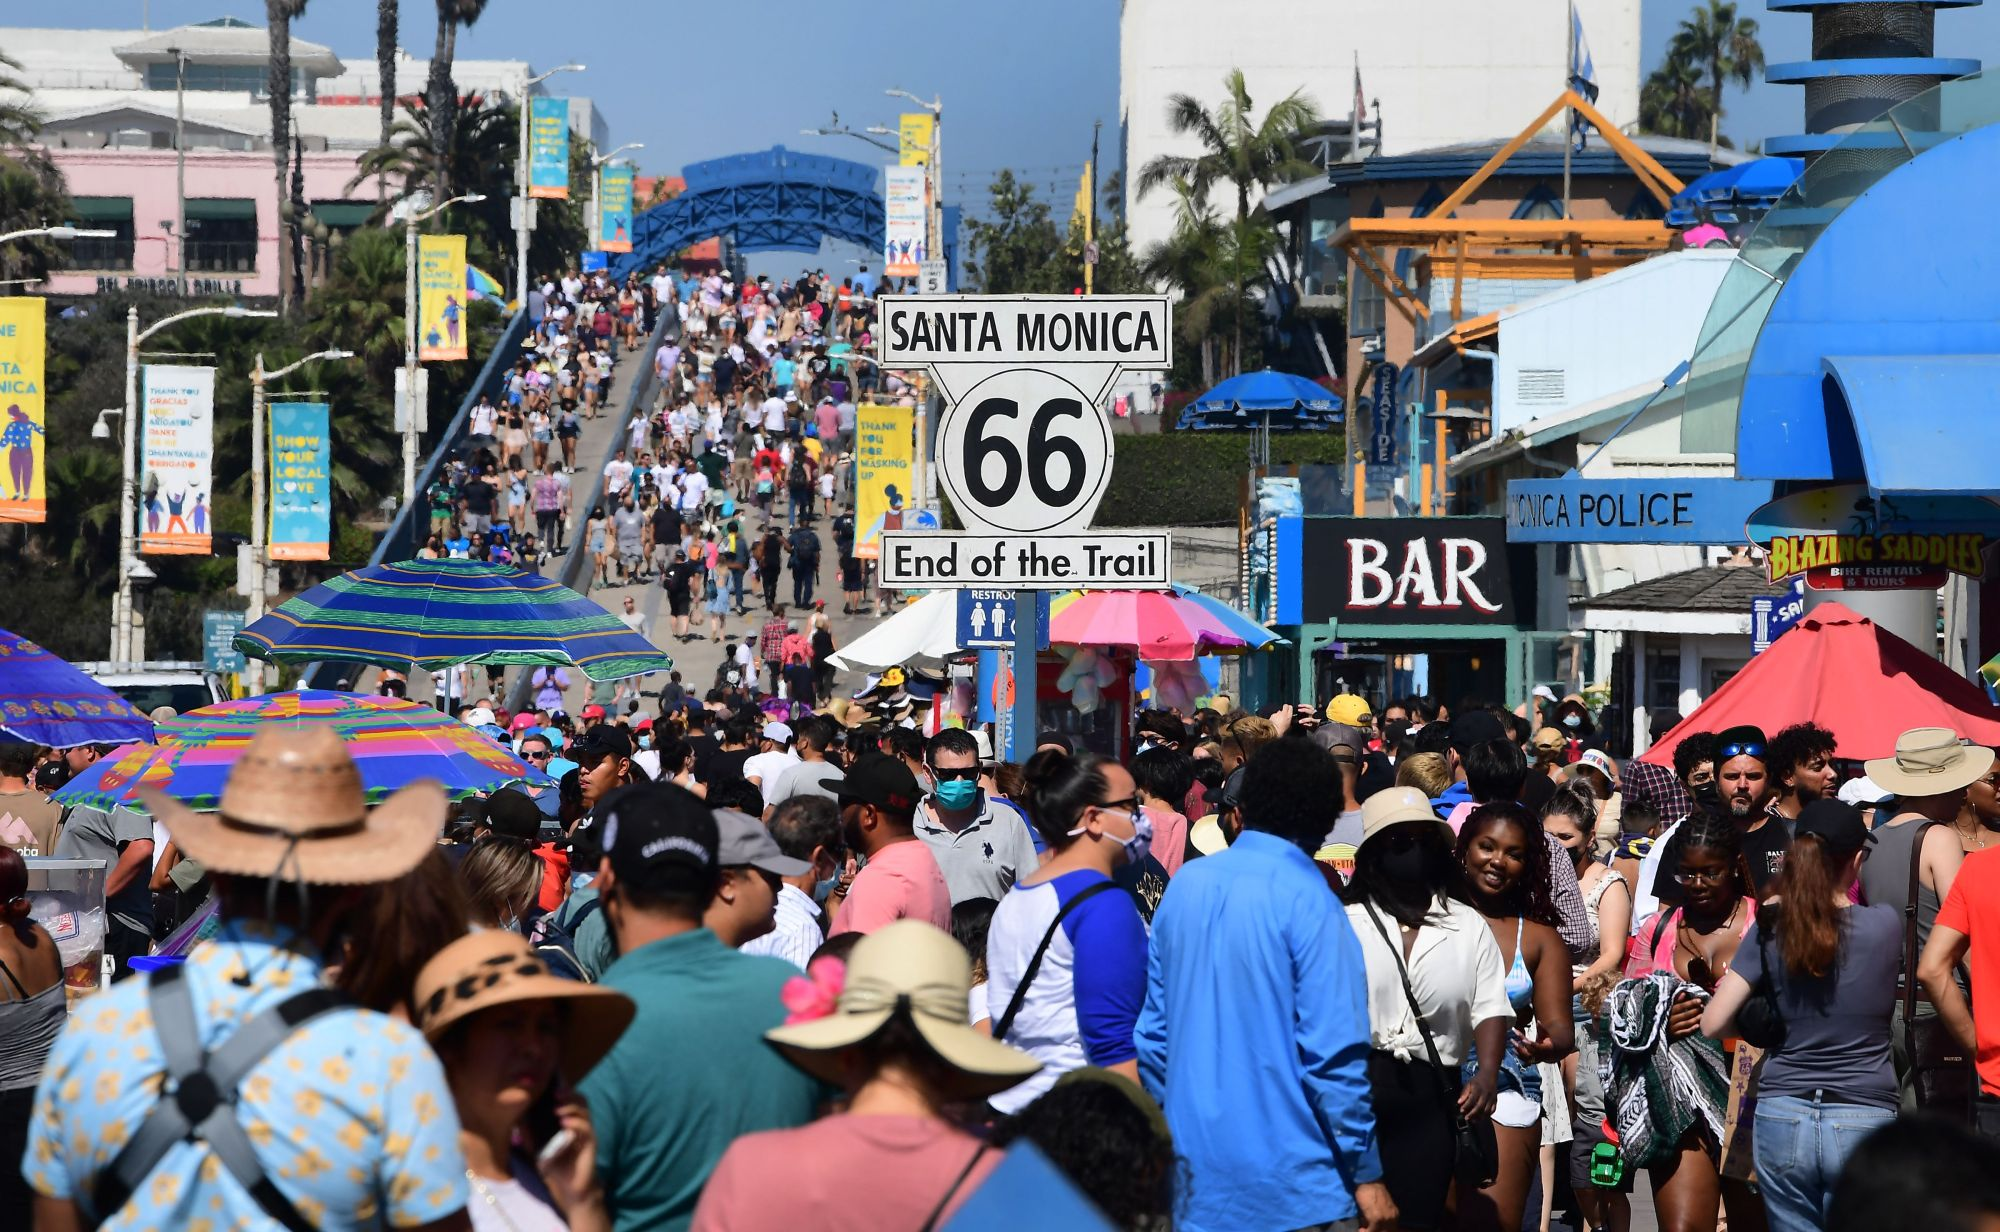 A crowd of people makes it's way to the end of the trail of Route 66 at Santa Monica Pier as people take to the coastline to beat the heat on Sept. 5, 2021. (FREDERIC J. BROWN/AFP via Getty Images)